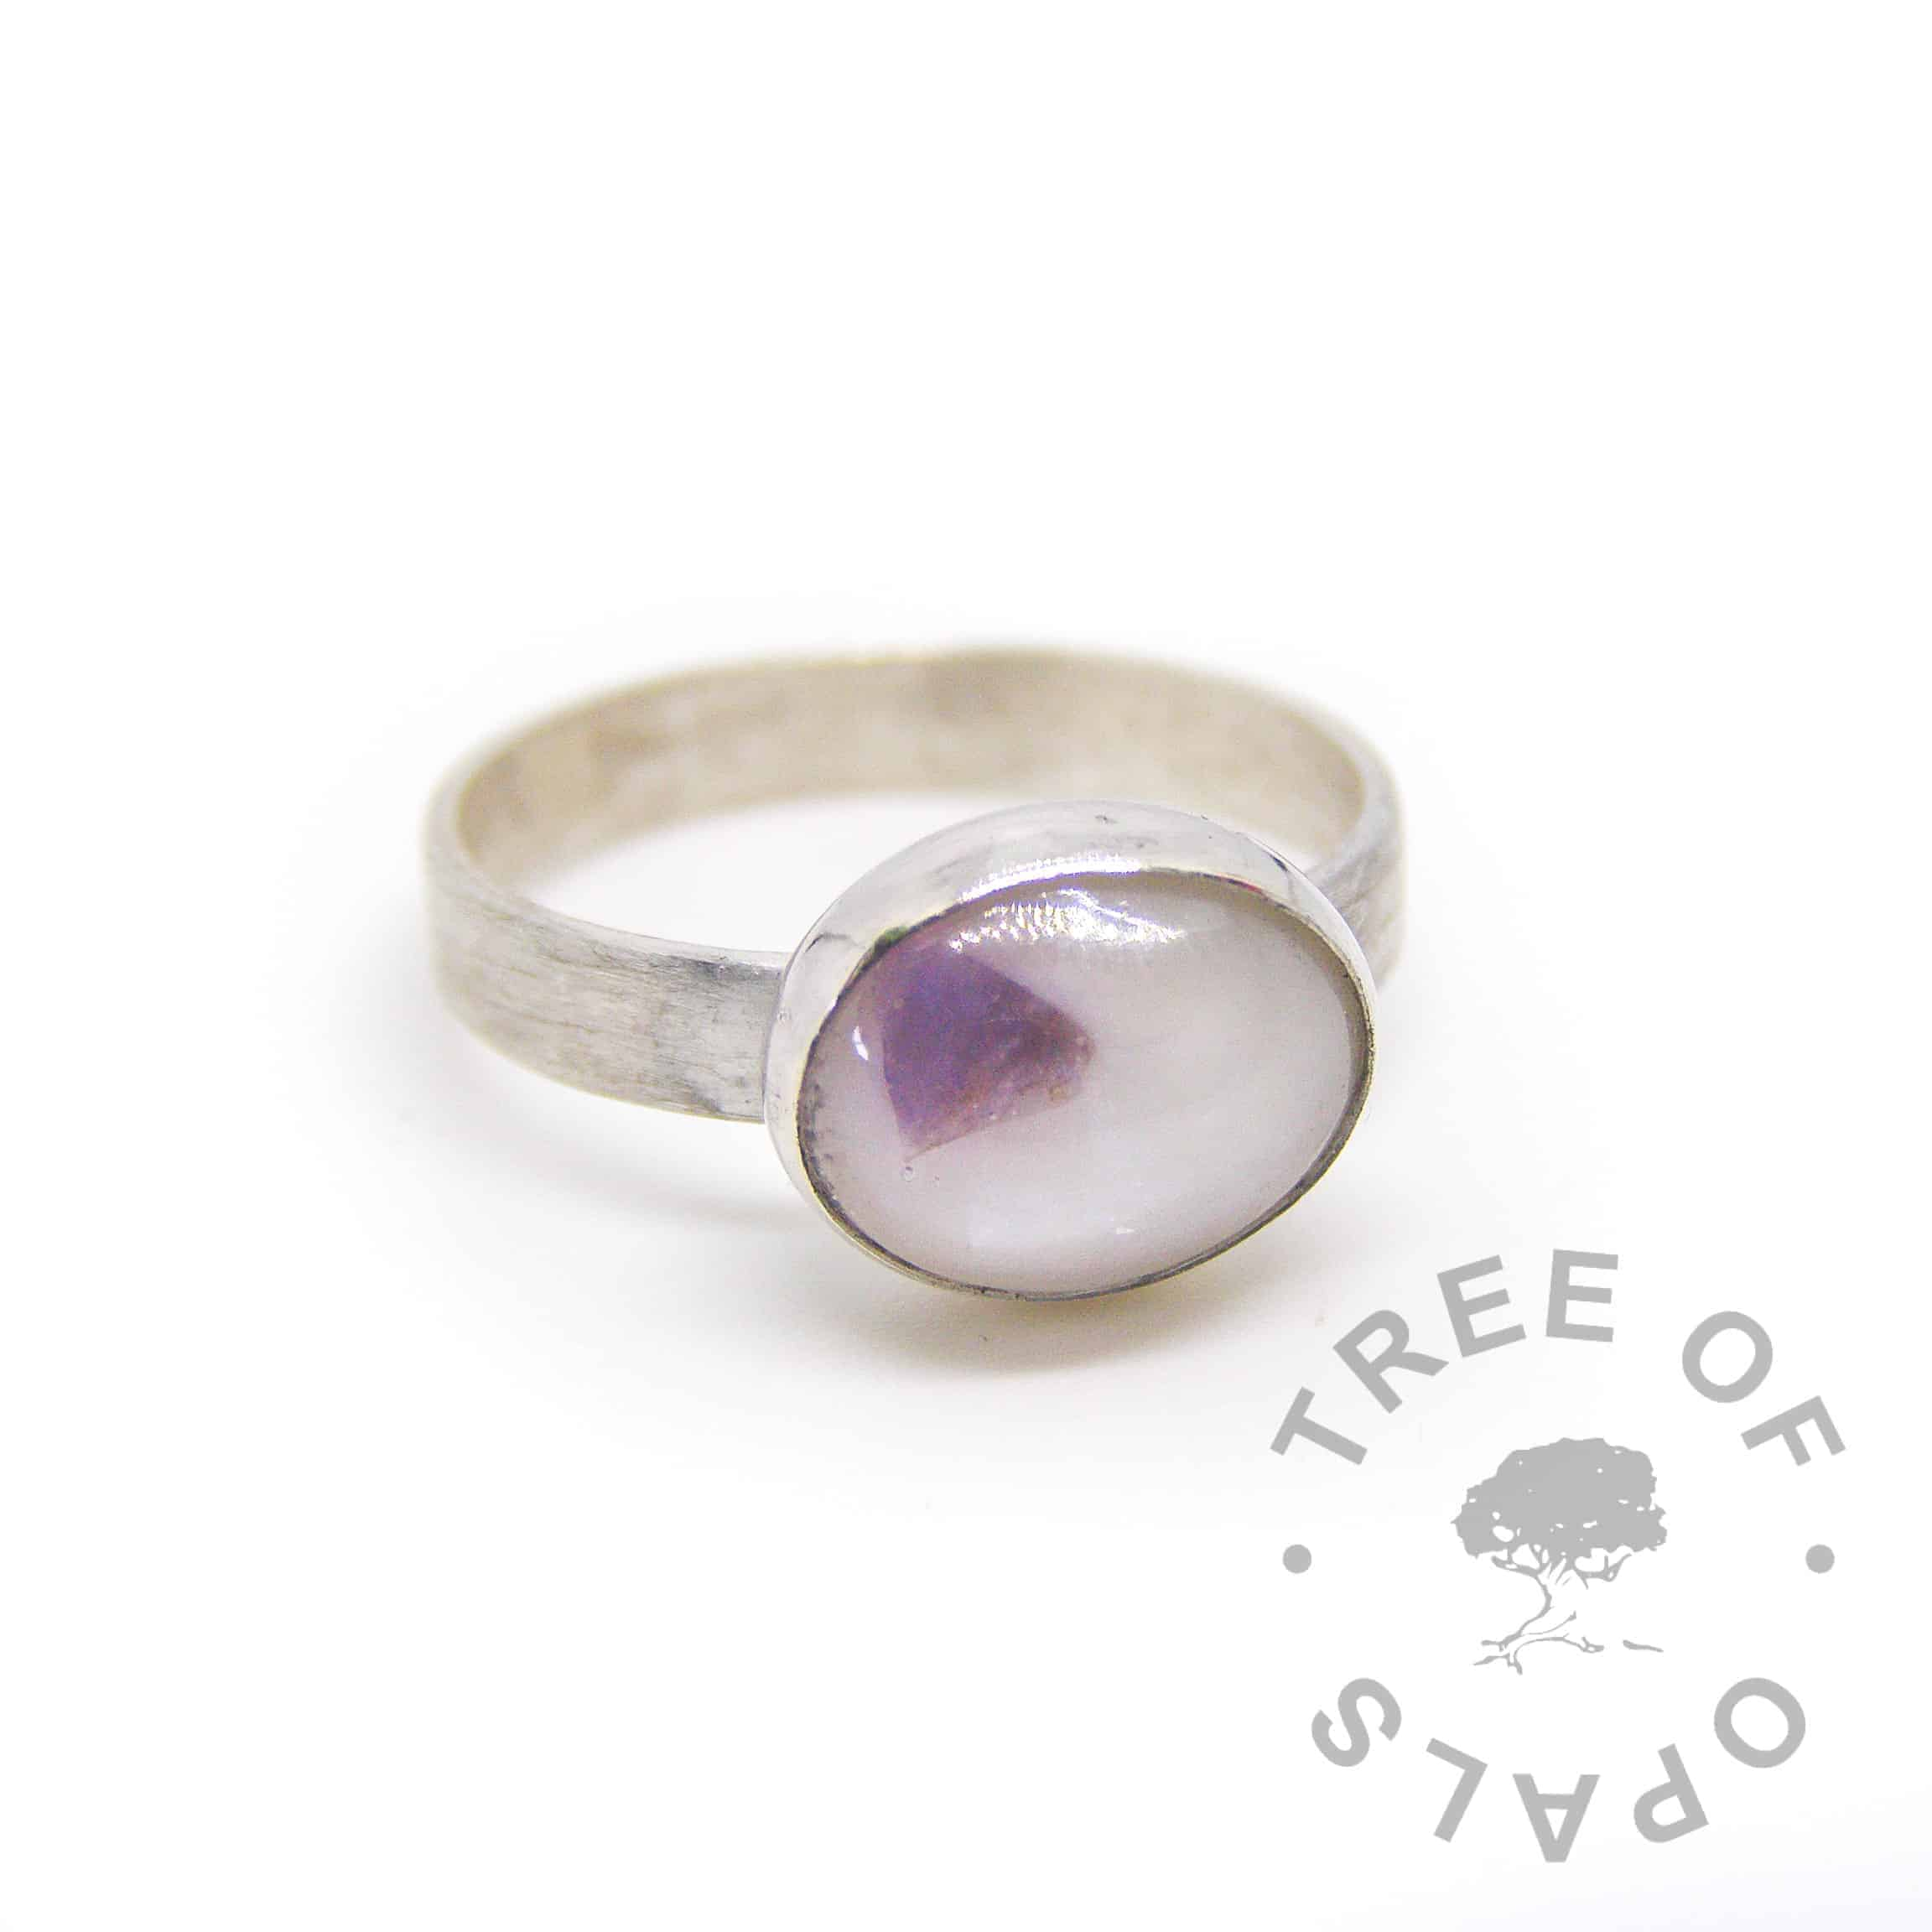 breastmilk ring with February birthstone amethyst. On brushed band